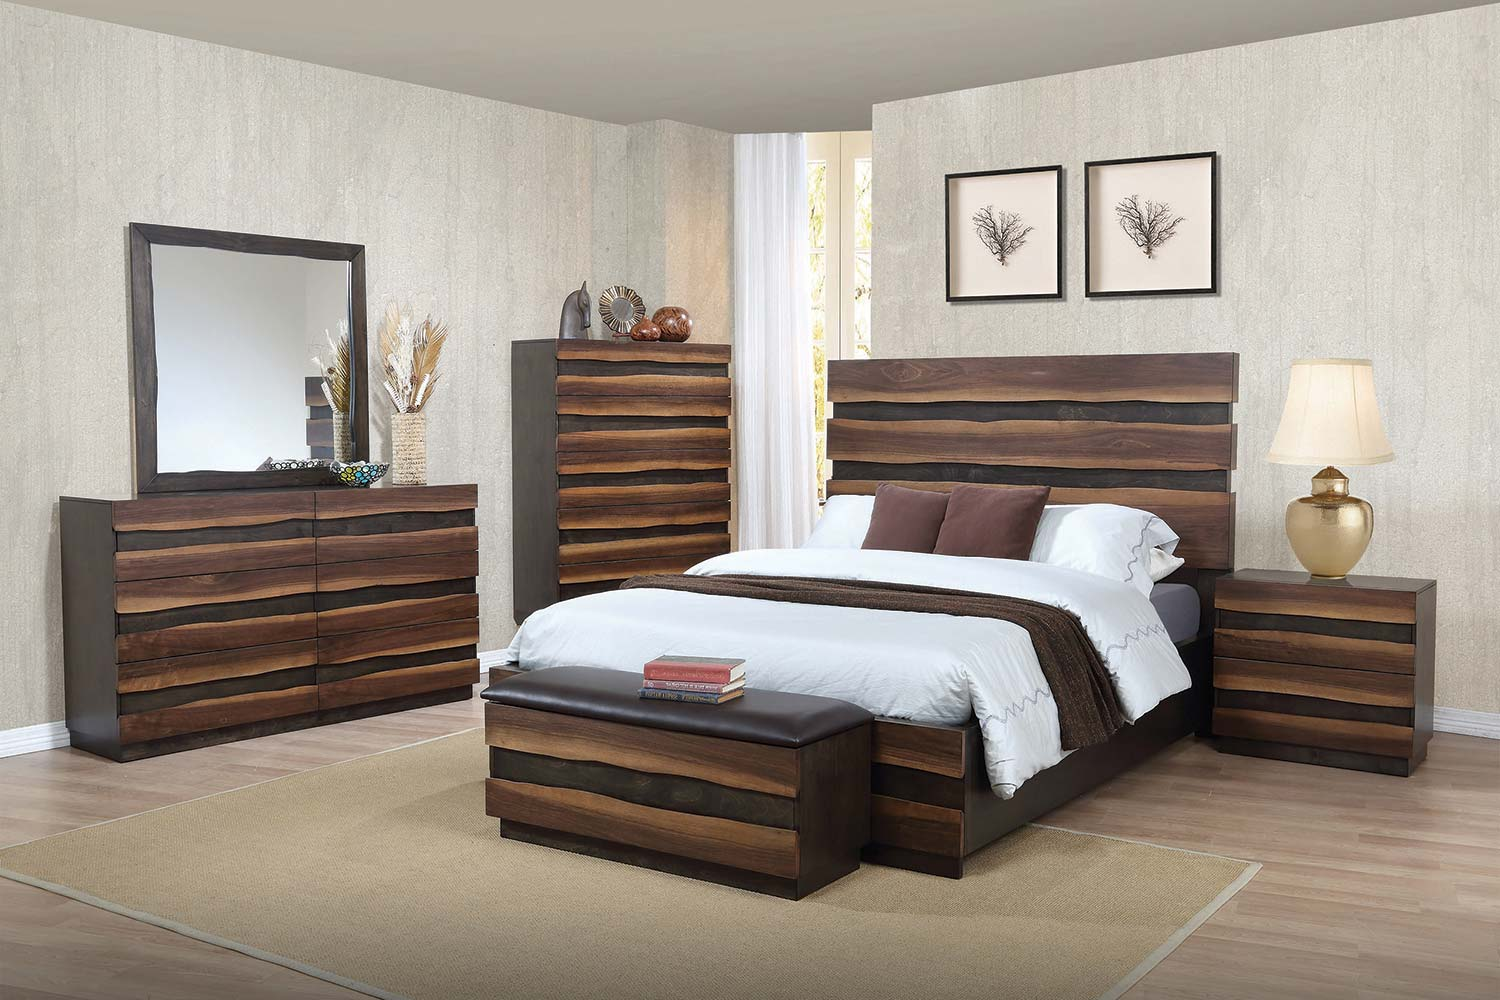 Coaster octavia bedroom collection coffee sappy walnut 205121 bedroom set at for Coaster bedroom furniture reviews